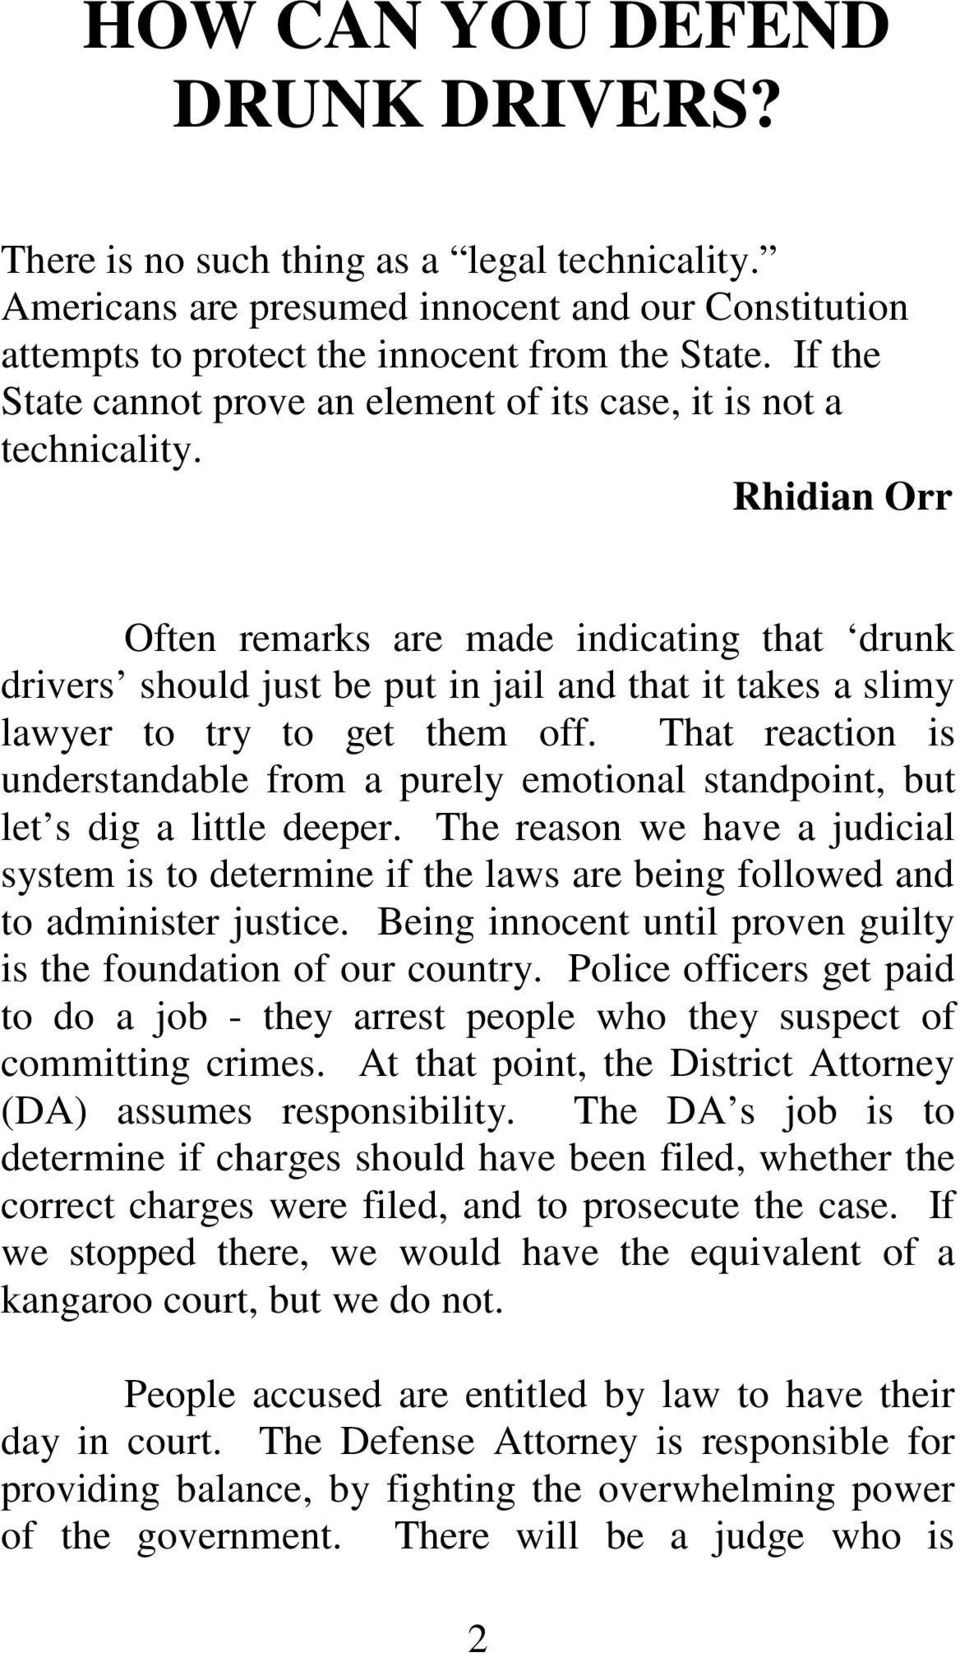 Rhidian Orr Often remarks are made indicating that drunk drivers should just be put in jail and that it takes a slimy lawyer to try to get them off.